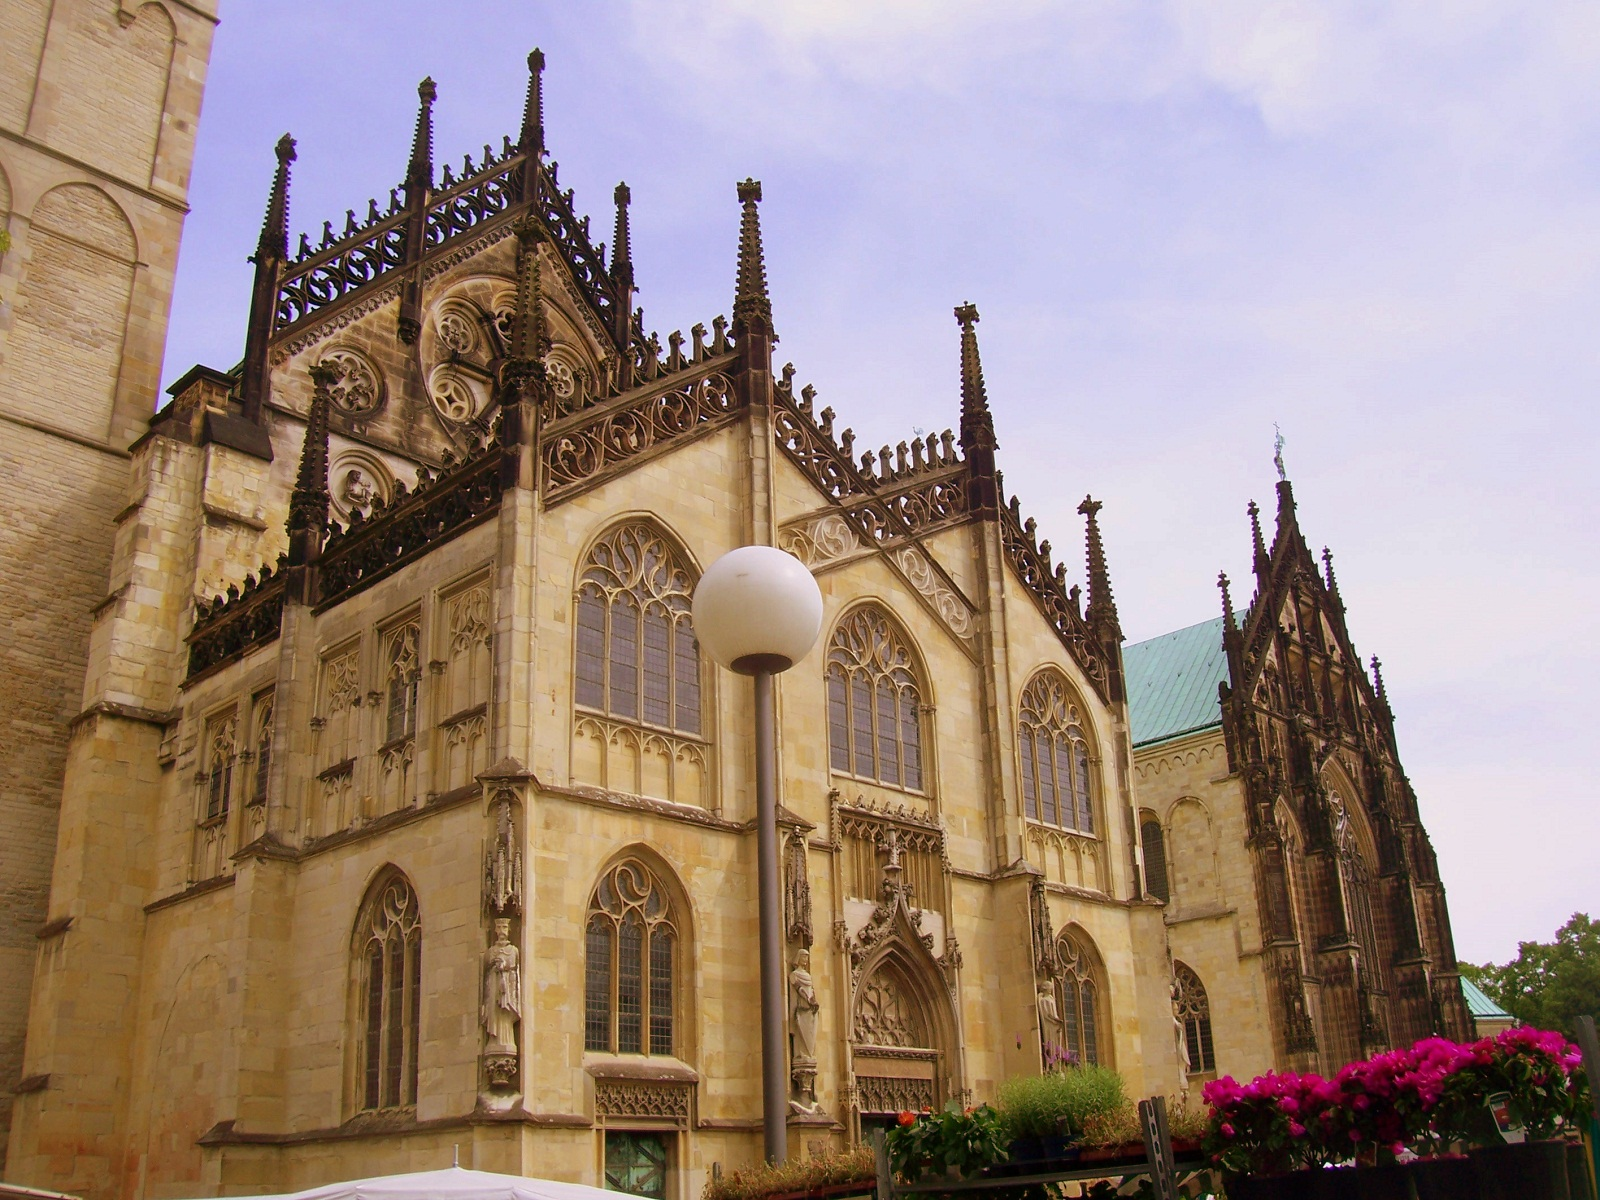 Saint Paulus Dom, Munster, Germany, Rear view